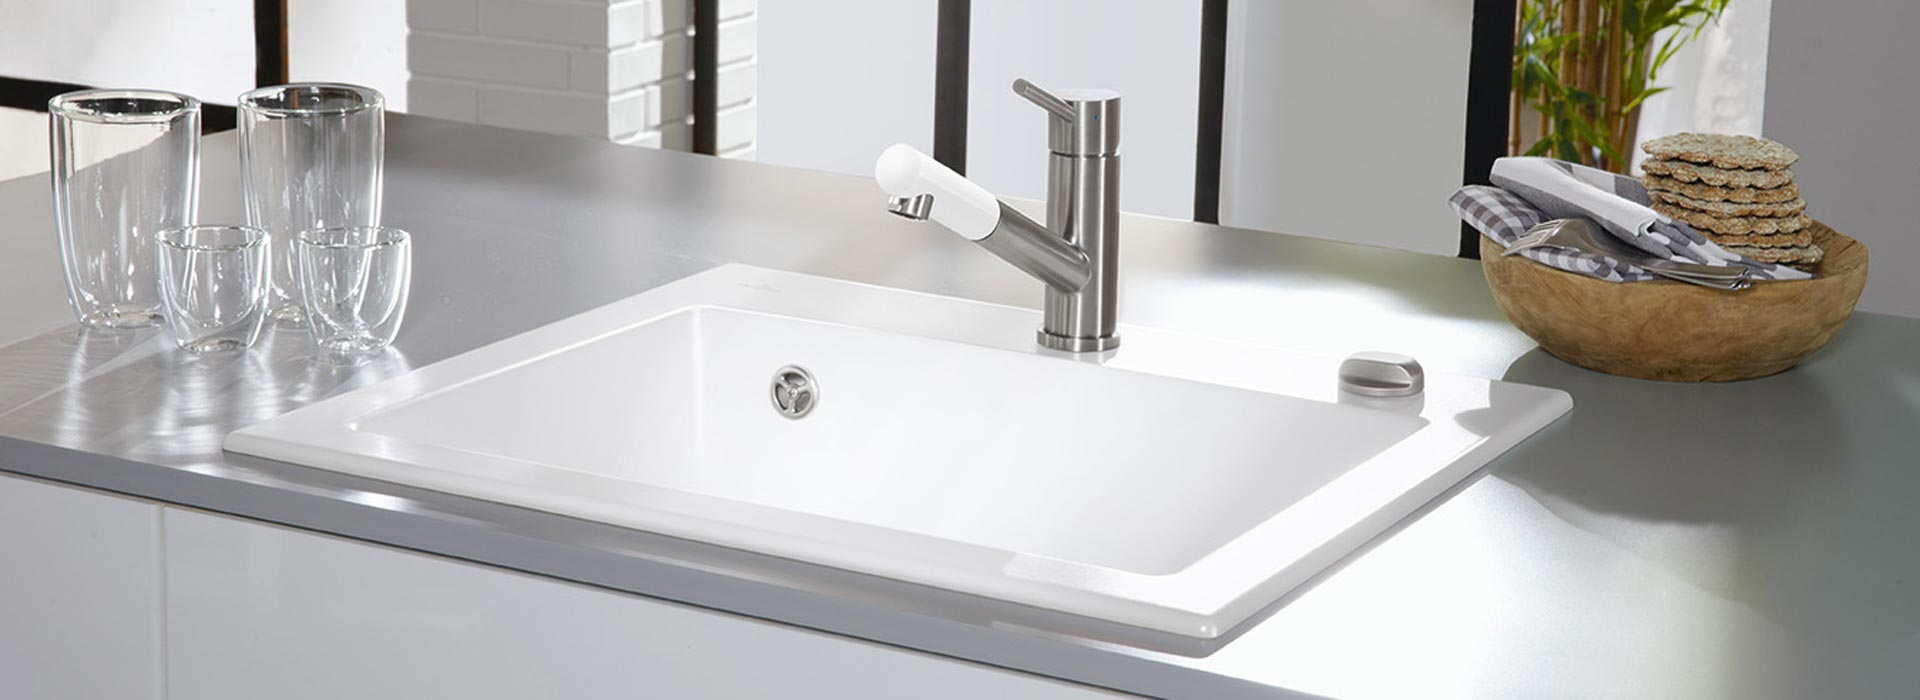 High quality ceramic sink from villeroy boch built in sink subway 60s workwithnaturefo